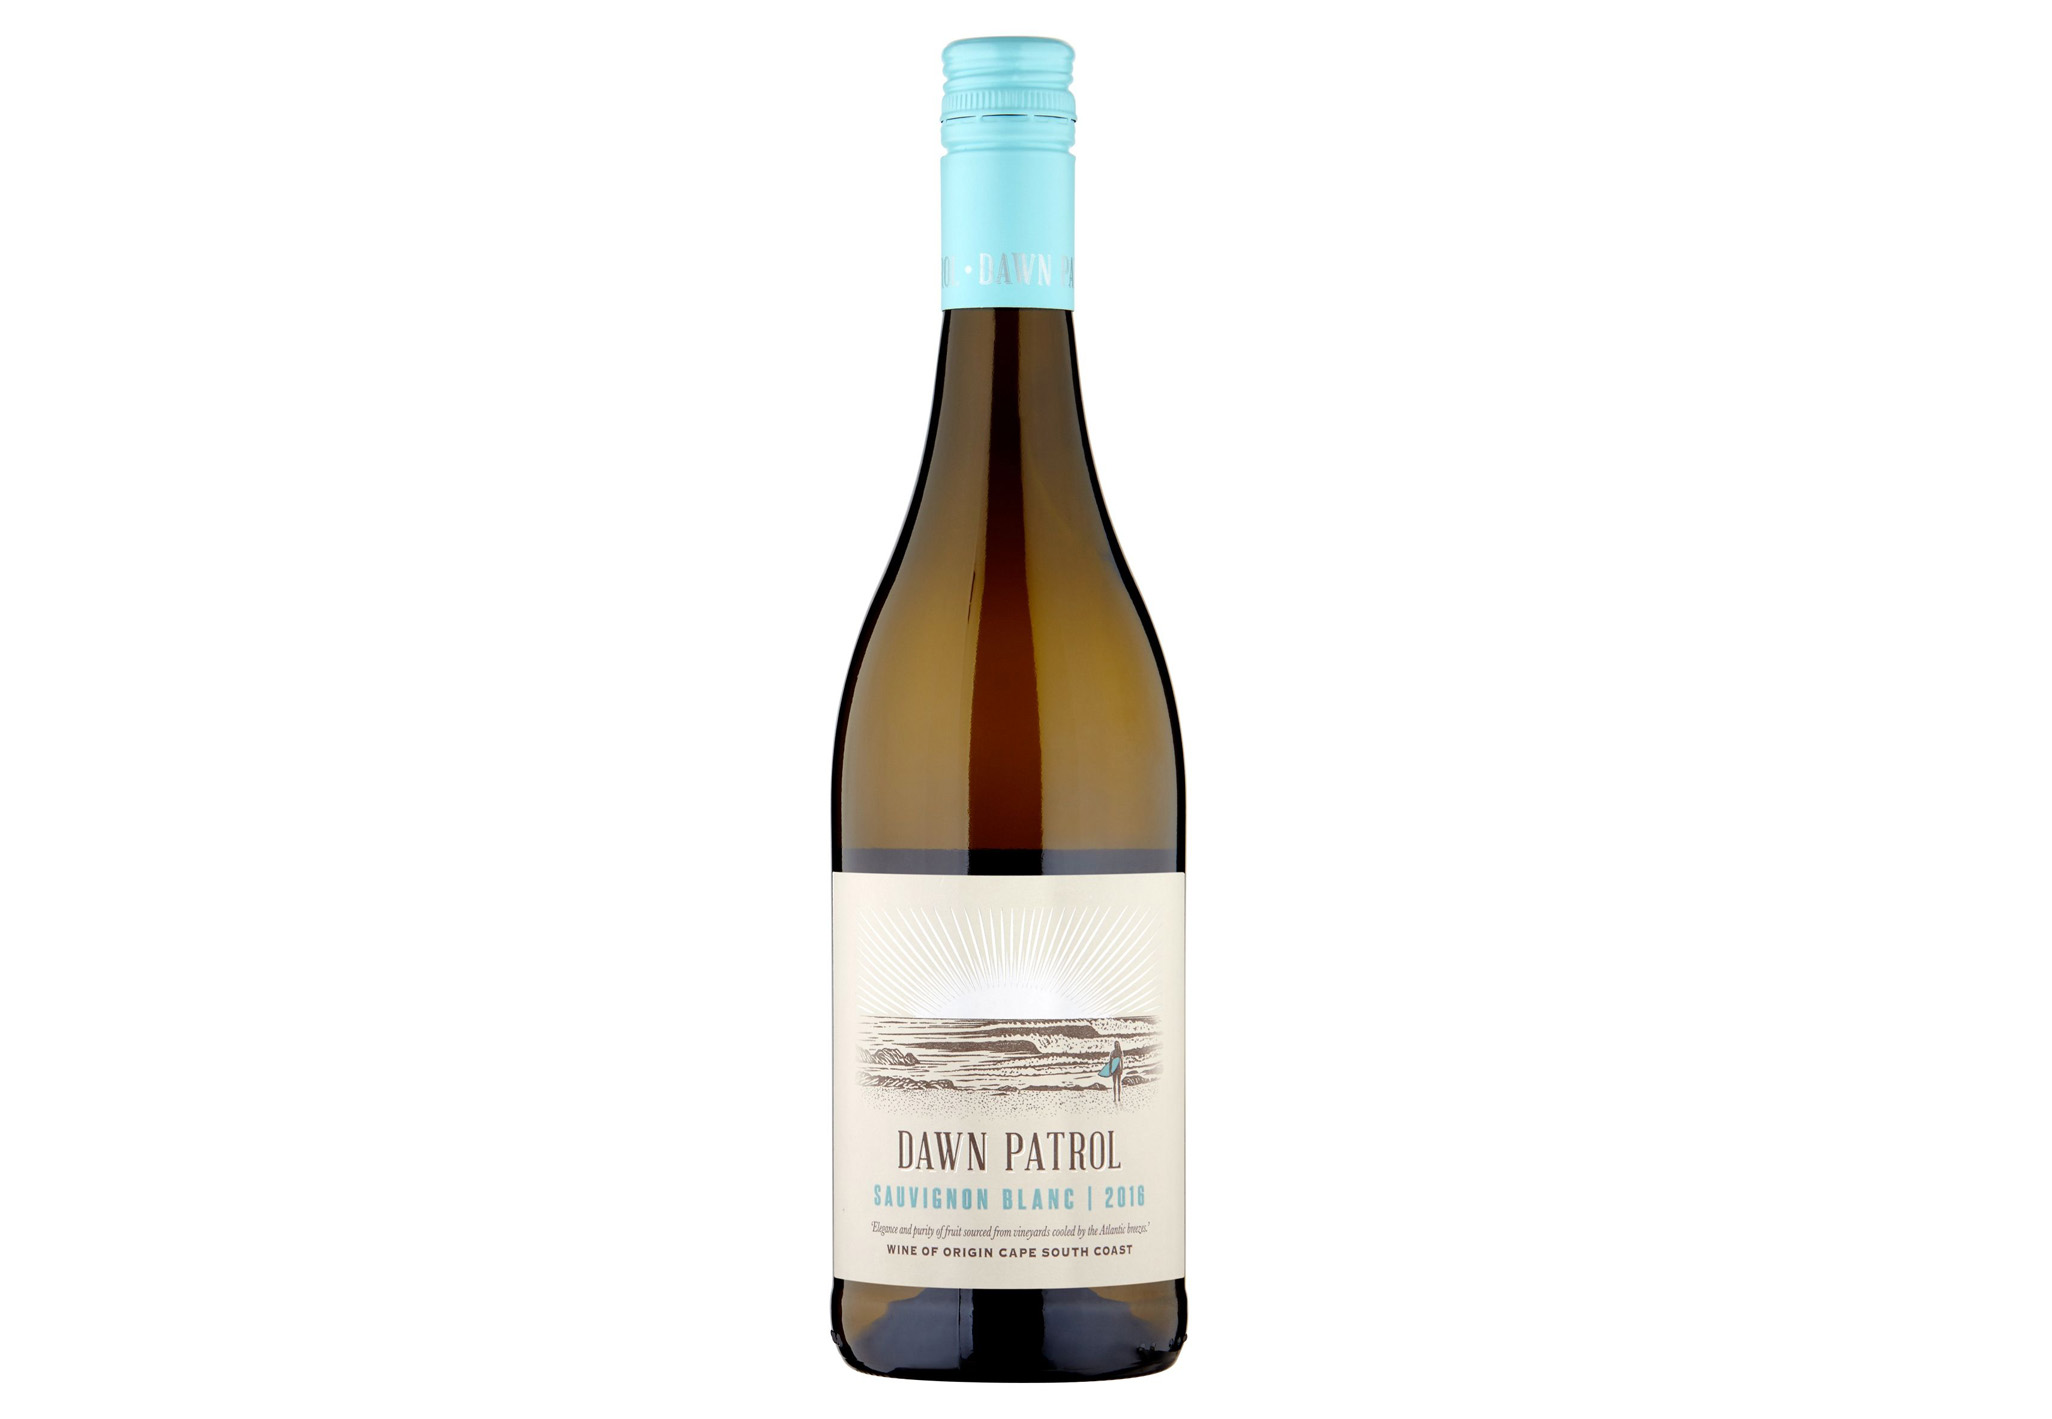 Dawn Patrol Sauvignon Blanc, South Africa (Waitrose/PA)